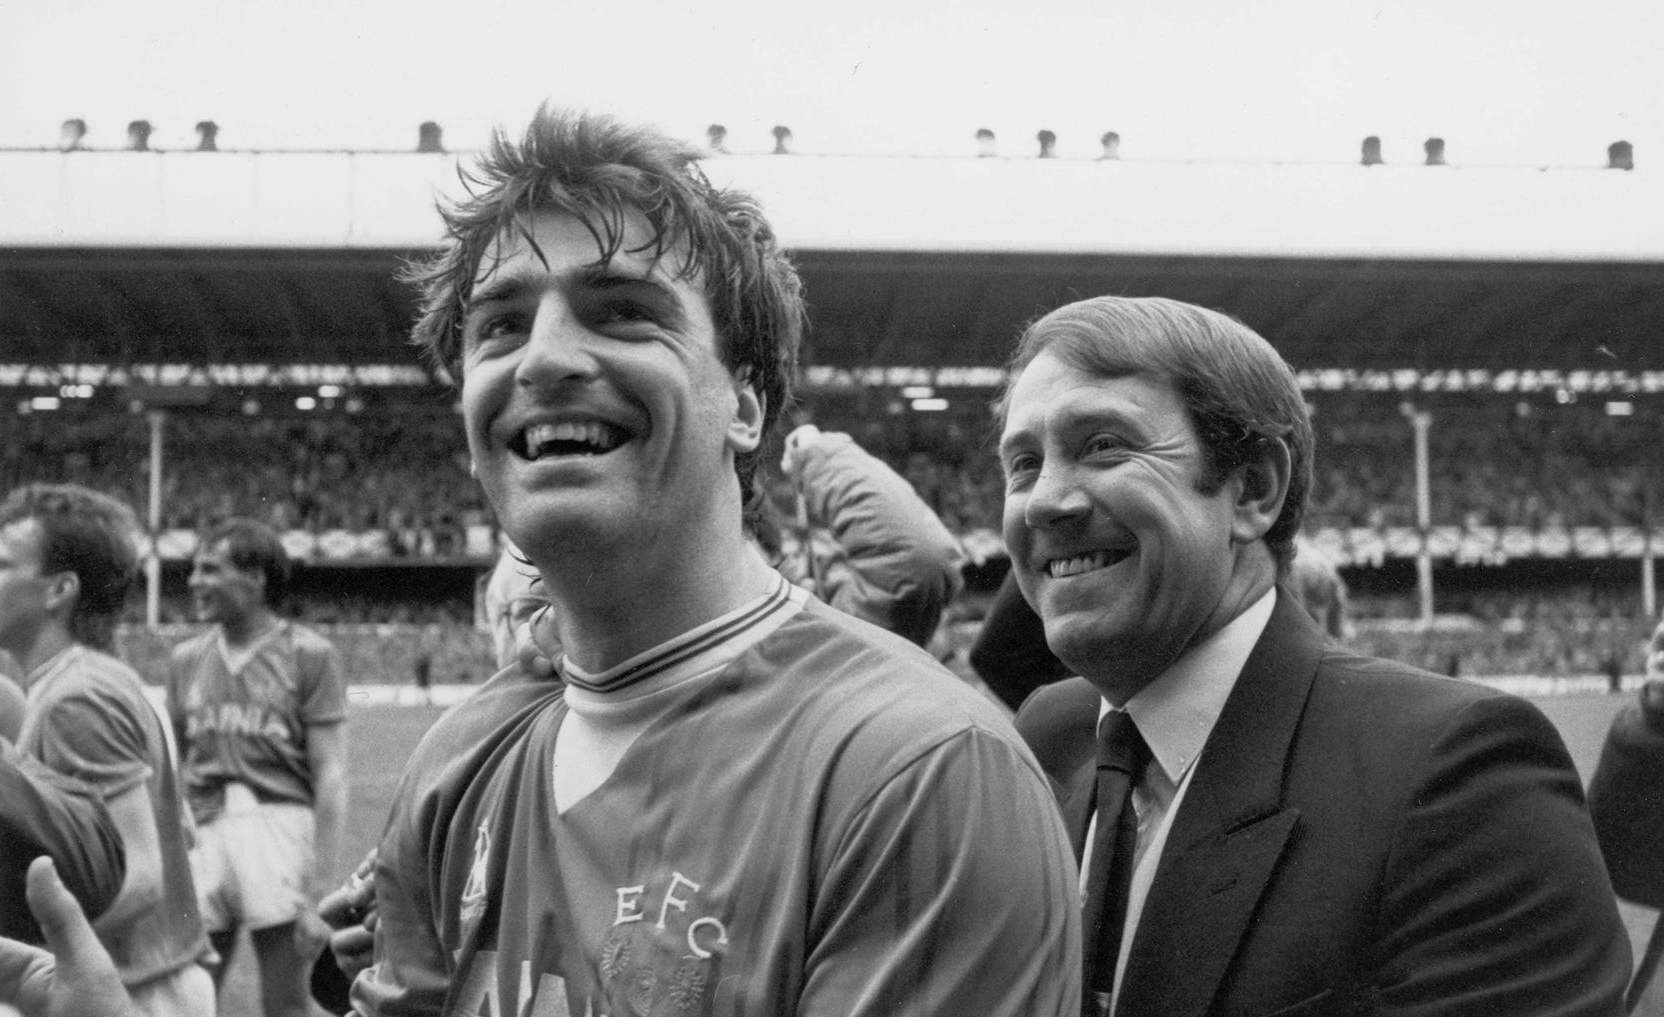 From England S Finest To Dethroned Royalty The Rise And Fall Of Everton Since 1985